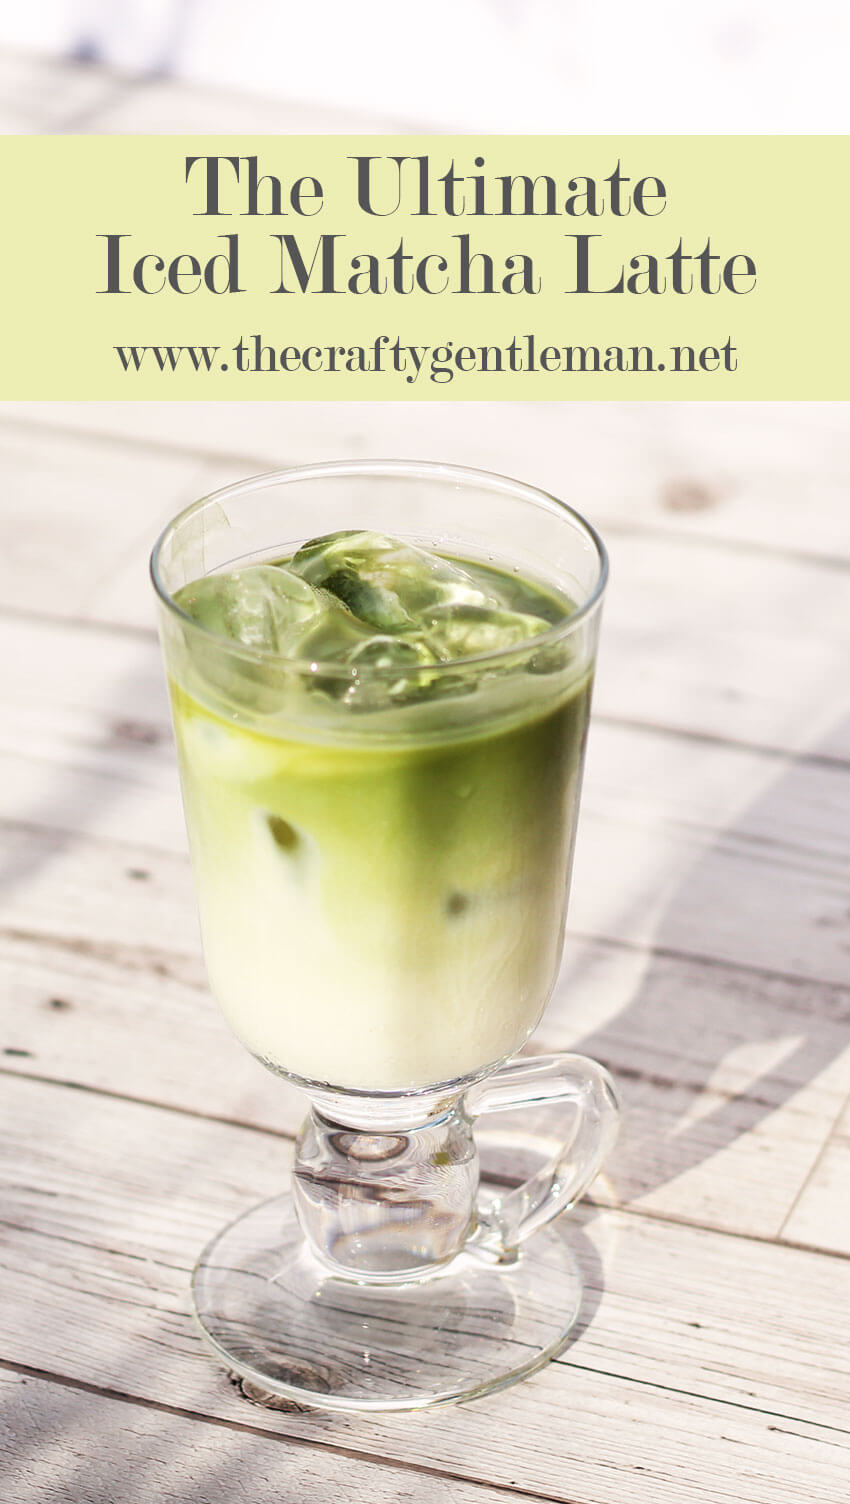 The Ultimate Iced Matcha Latte Recipe for summer - Click through for full recipe